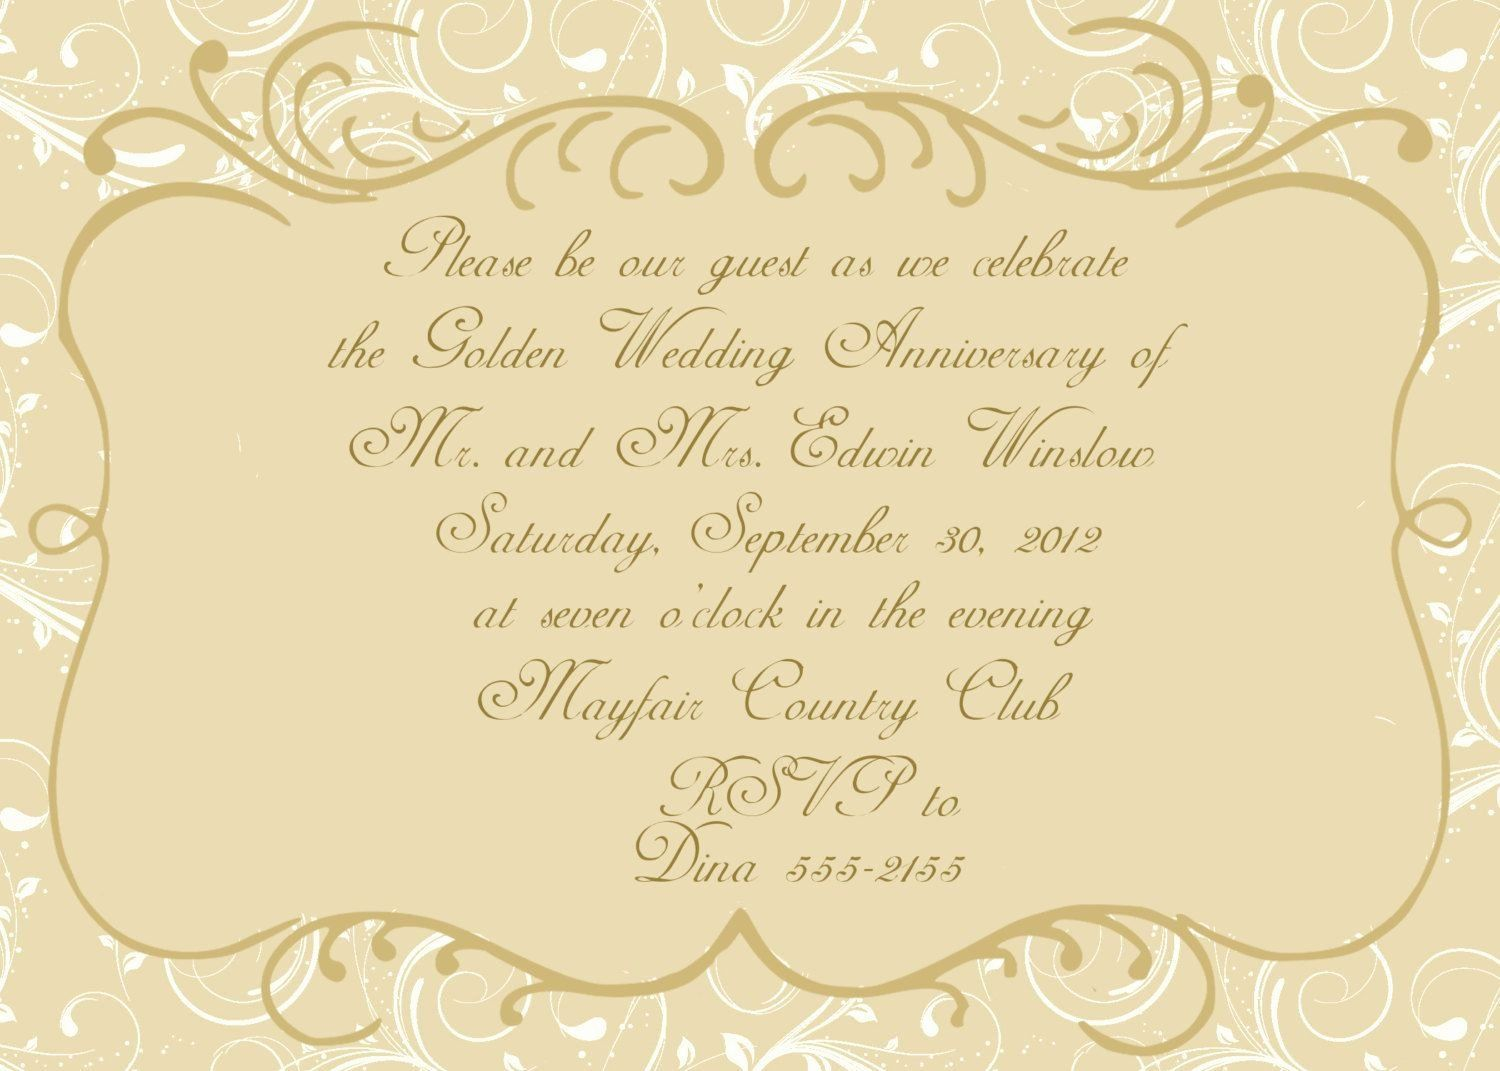 001 Archaicawful 50th Wedding Anniversary Invitation Template Design  Templates Golden Uk Free DownloadFull